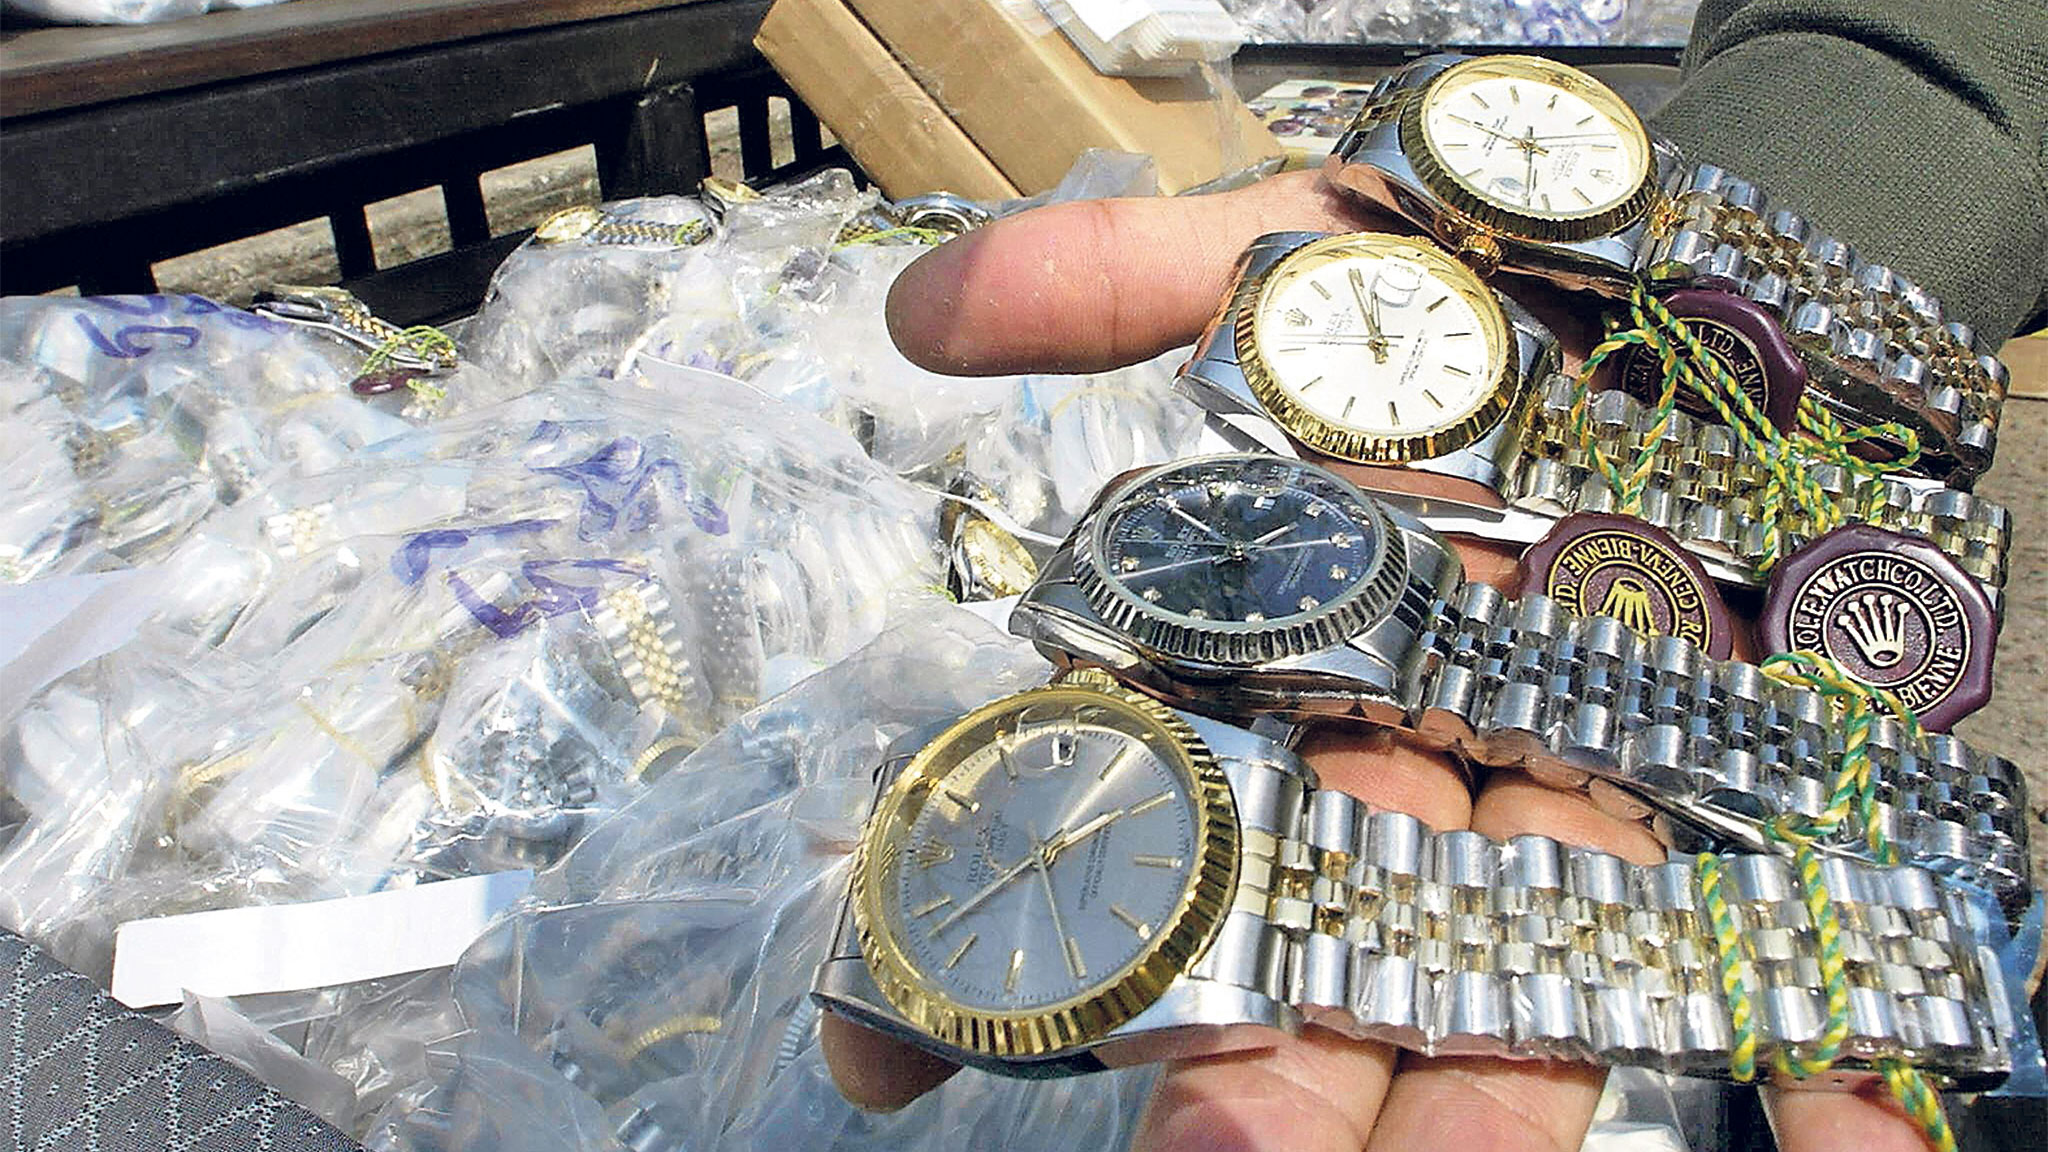 Fake watches destroyed